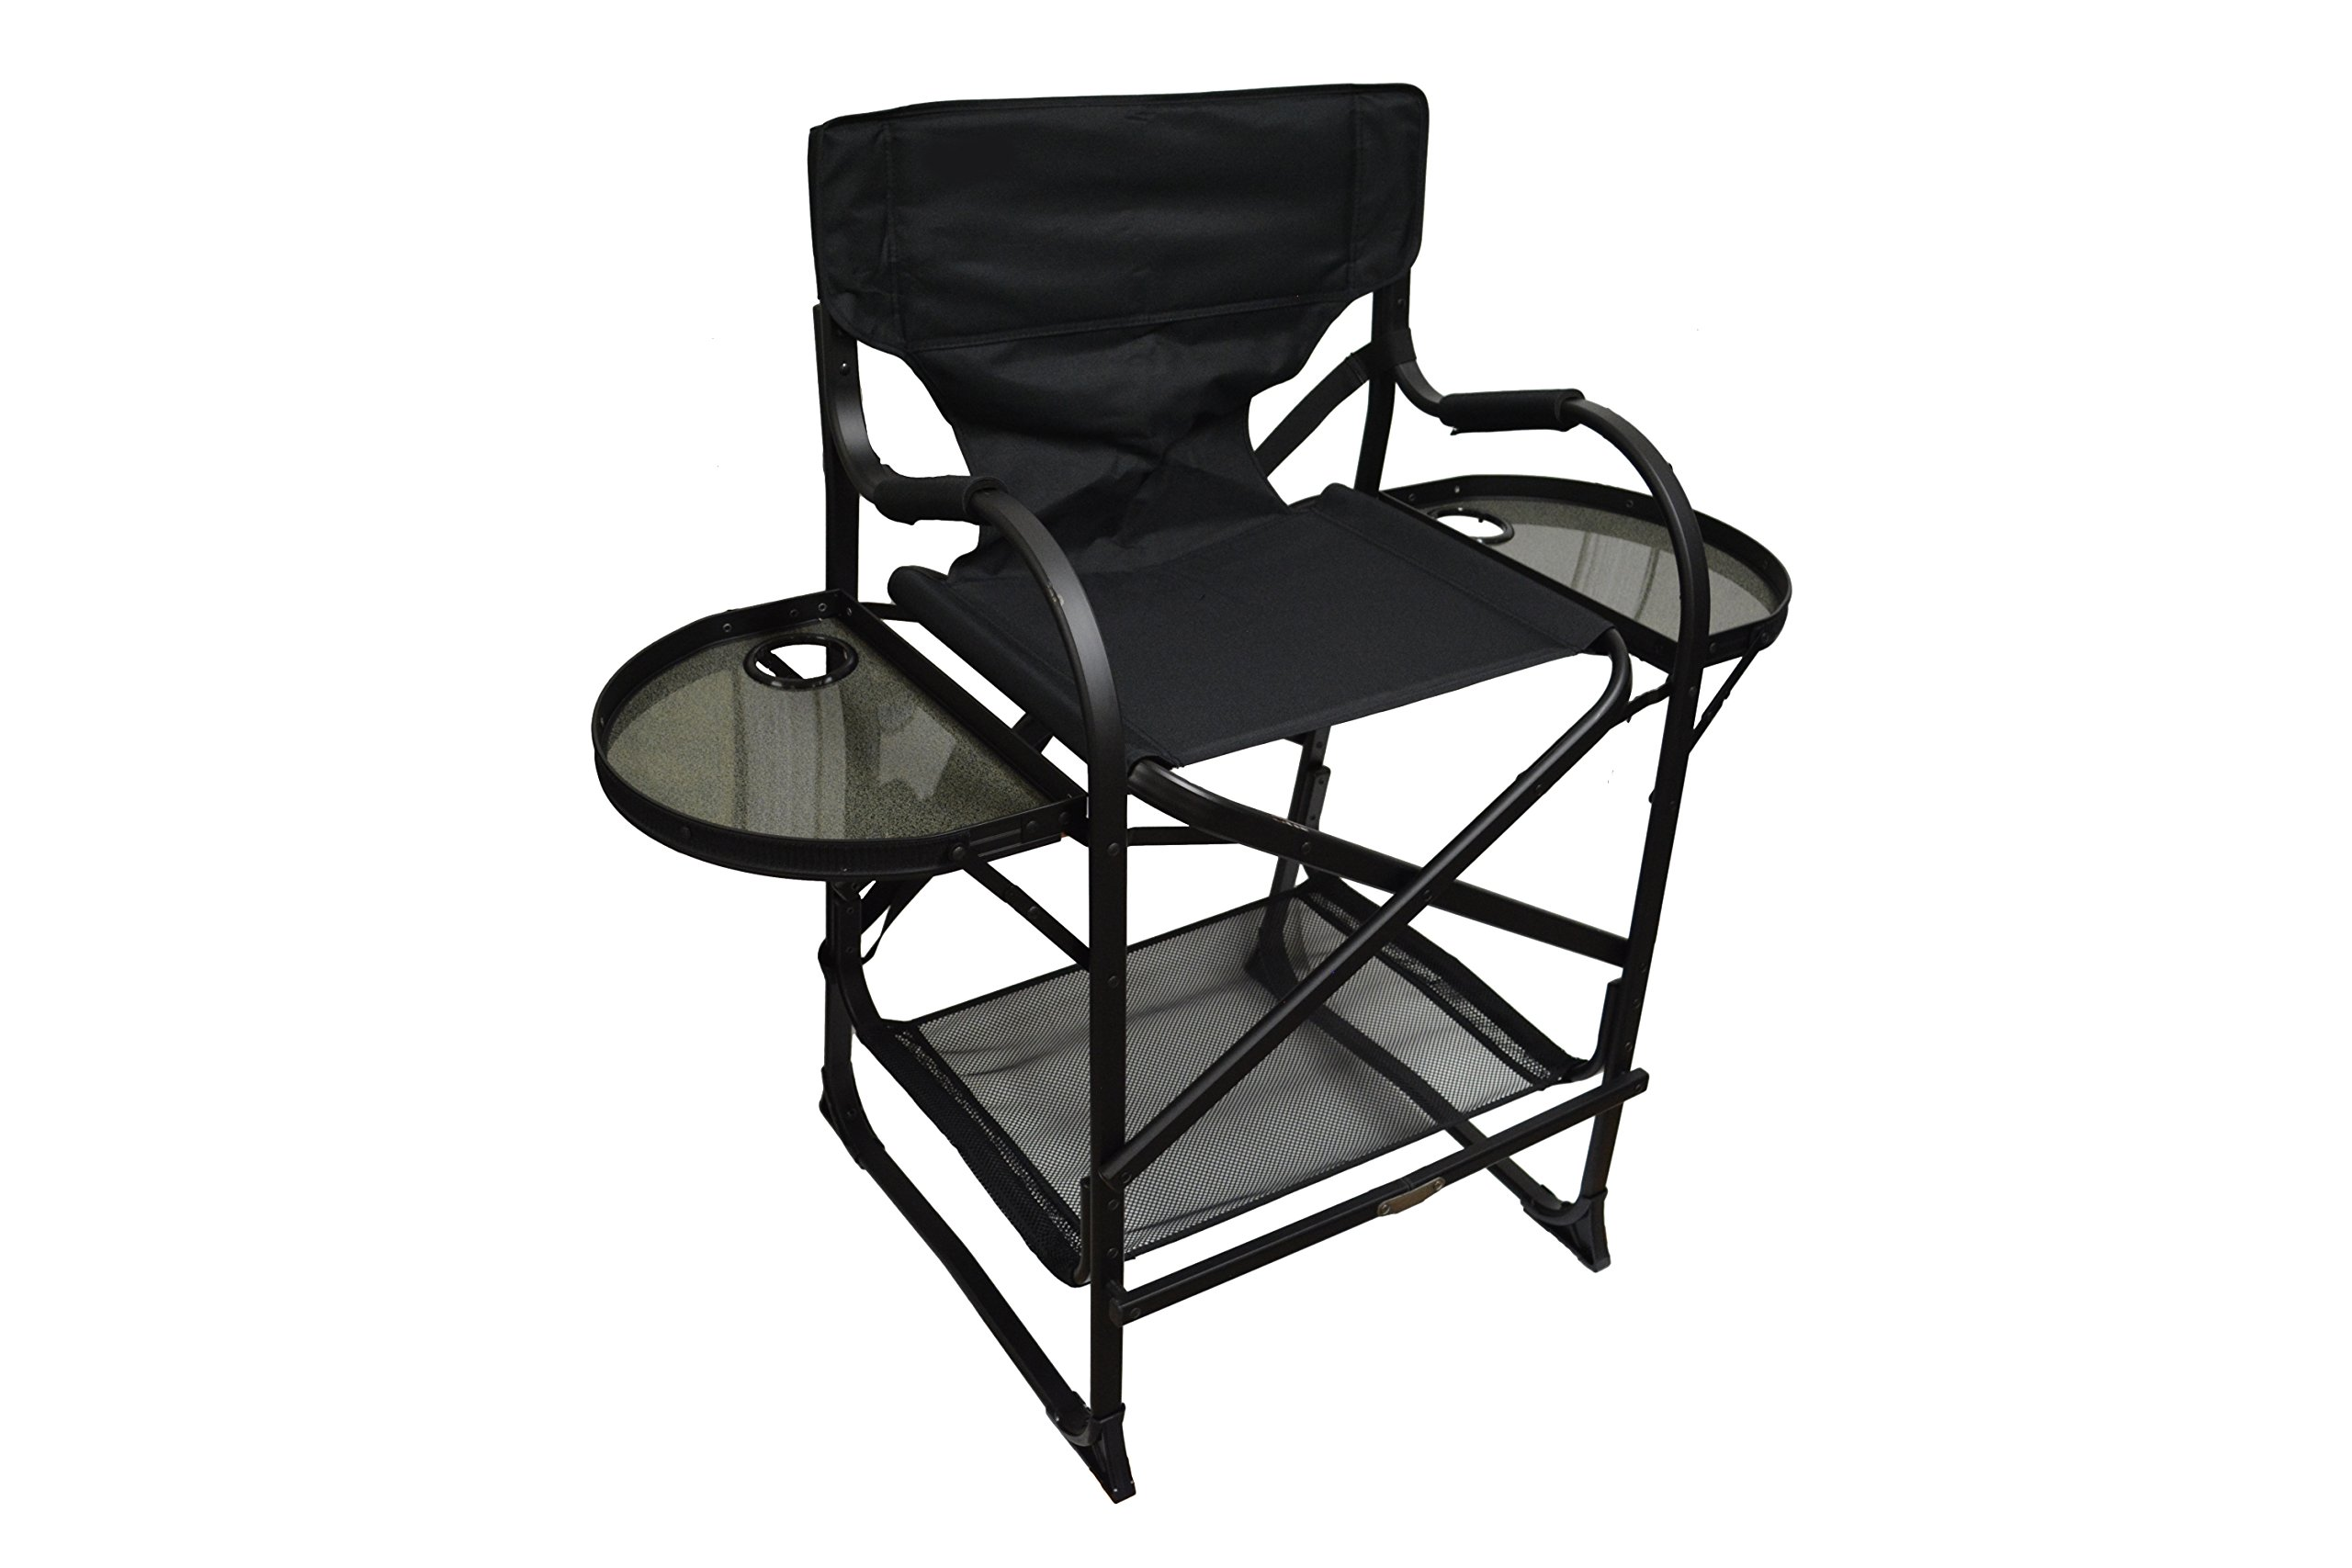 Professional Makeup Artist Directors Chair (Foldable & Light Weight)